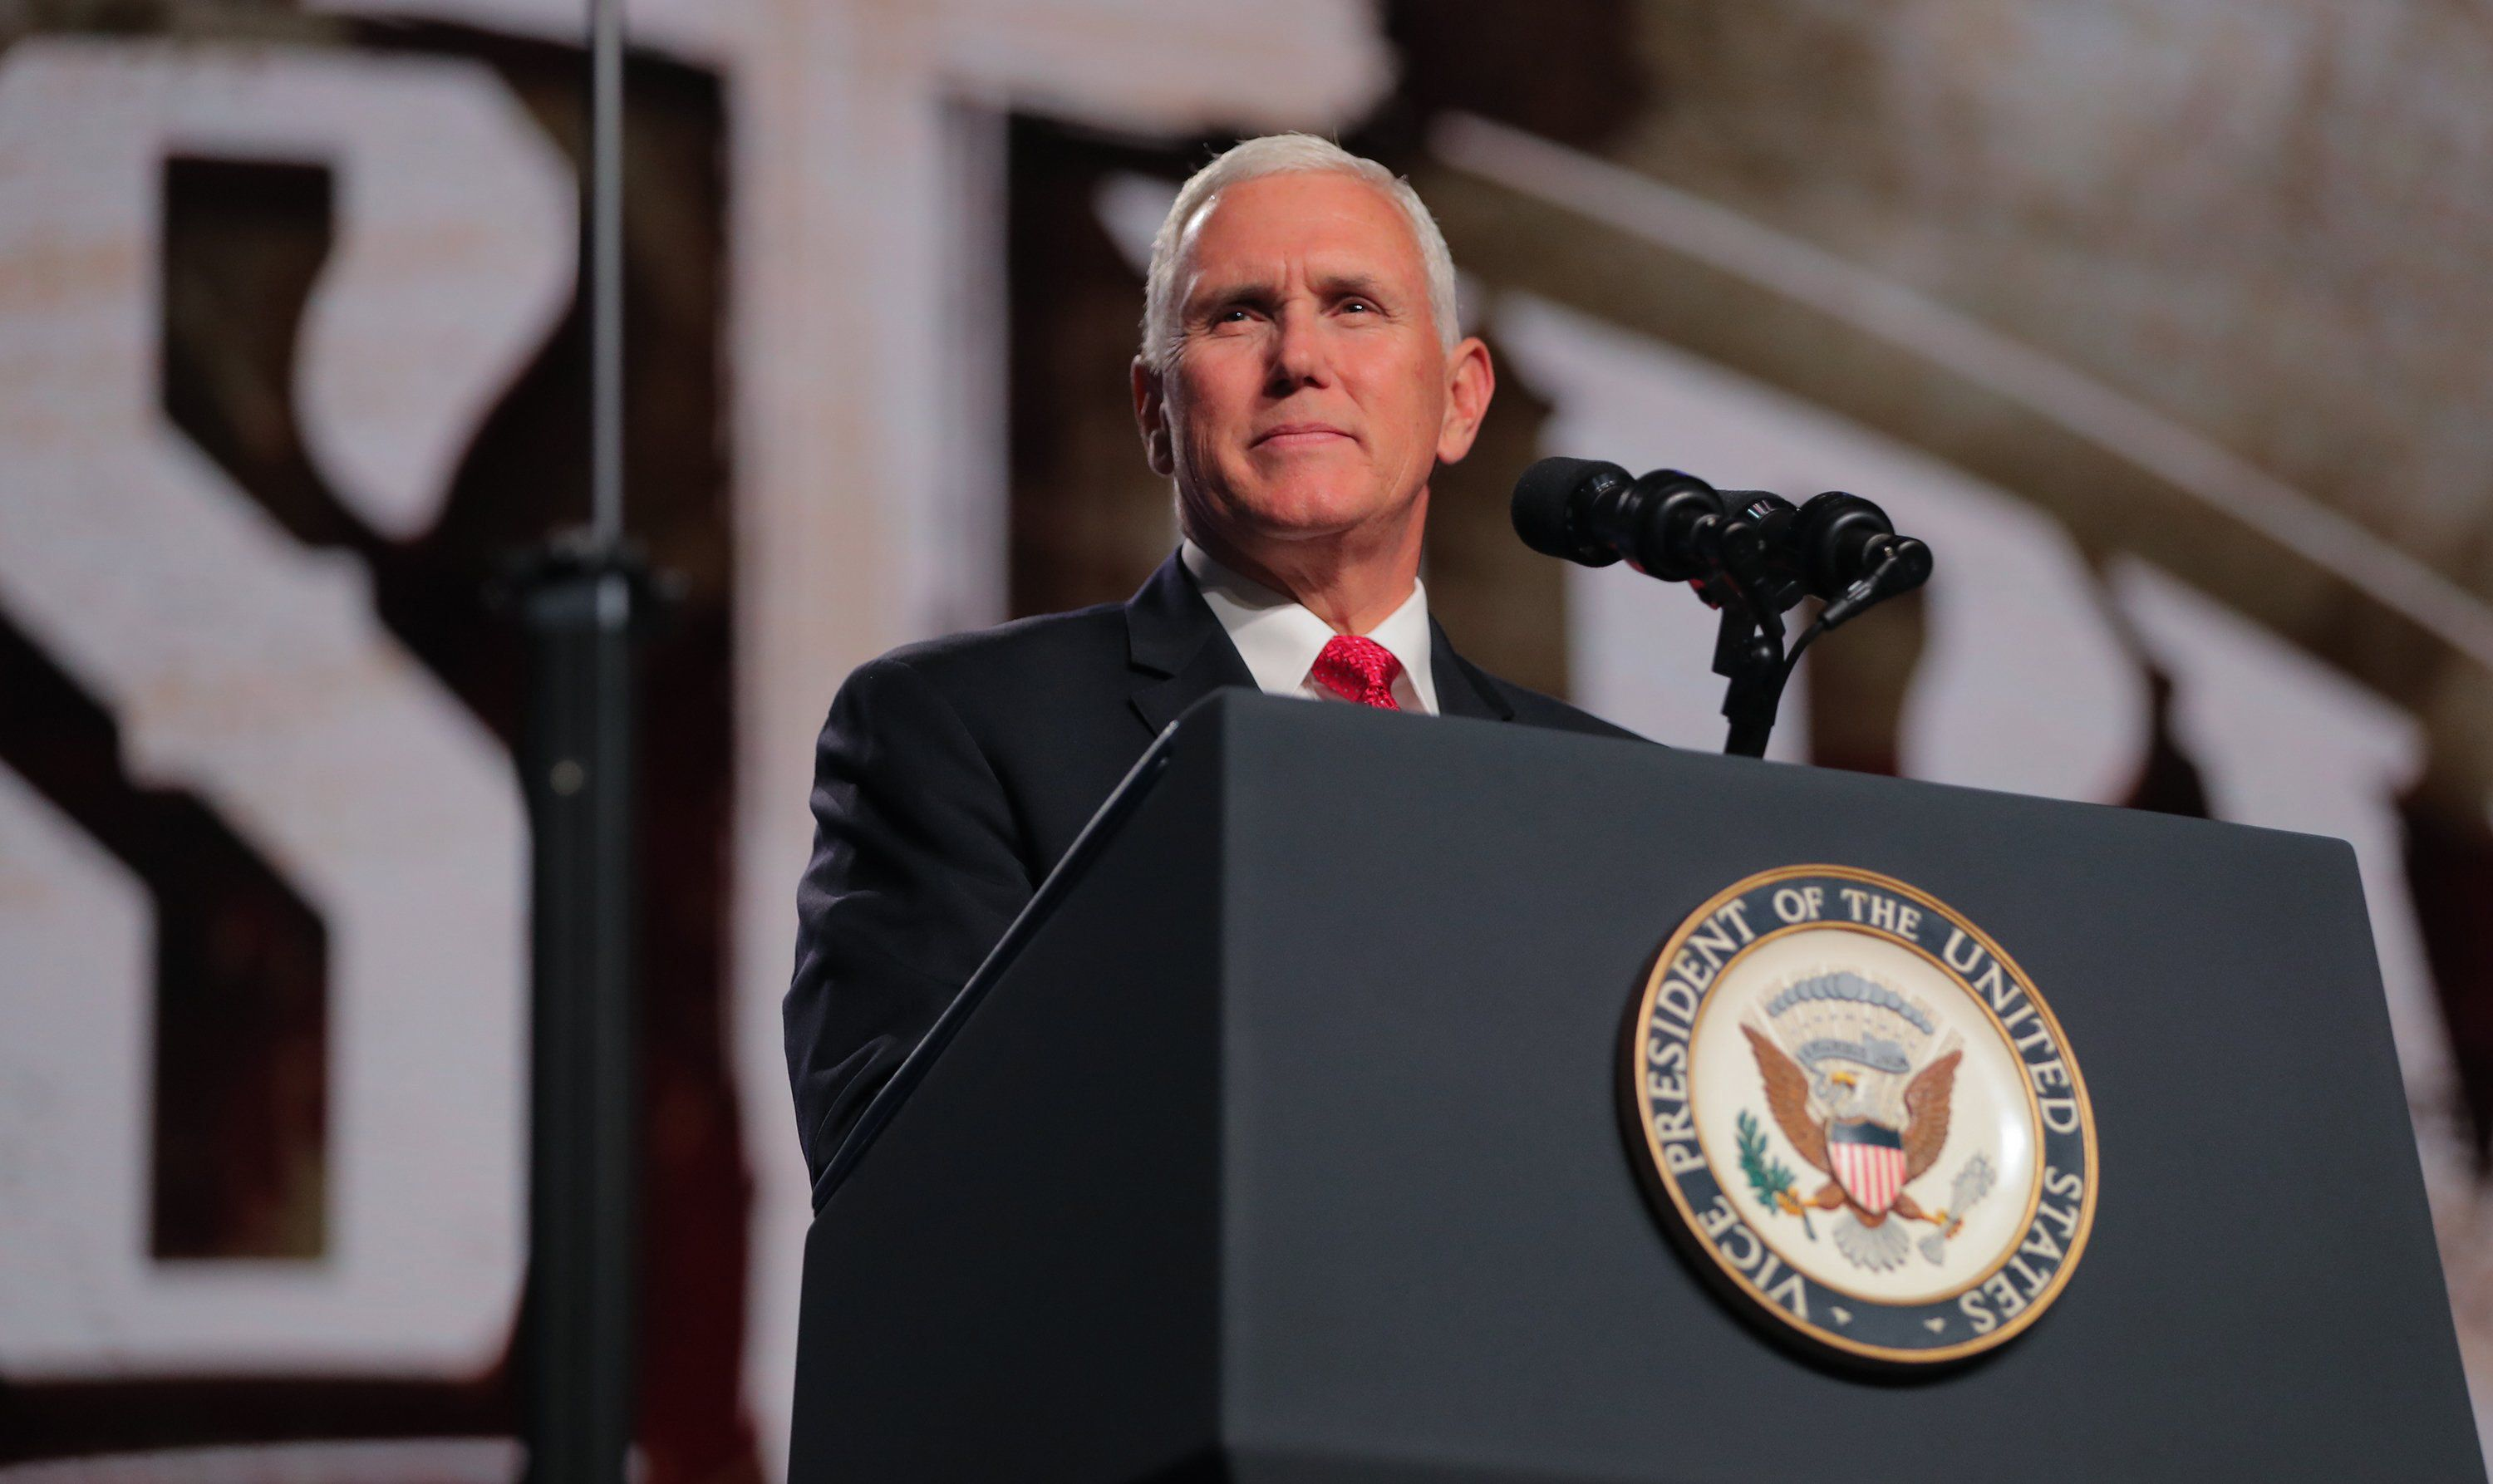 Vice President Mike Pence speaks at the Southern Baptist Convention meeting on Wednesday, June 13, 2018 in Dallas, Texas. (Rodger Mallison/Fort Worth Star-Telegram/TNS via Getty Images)